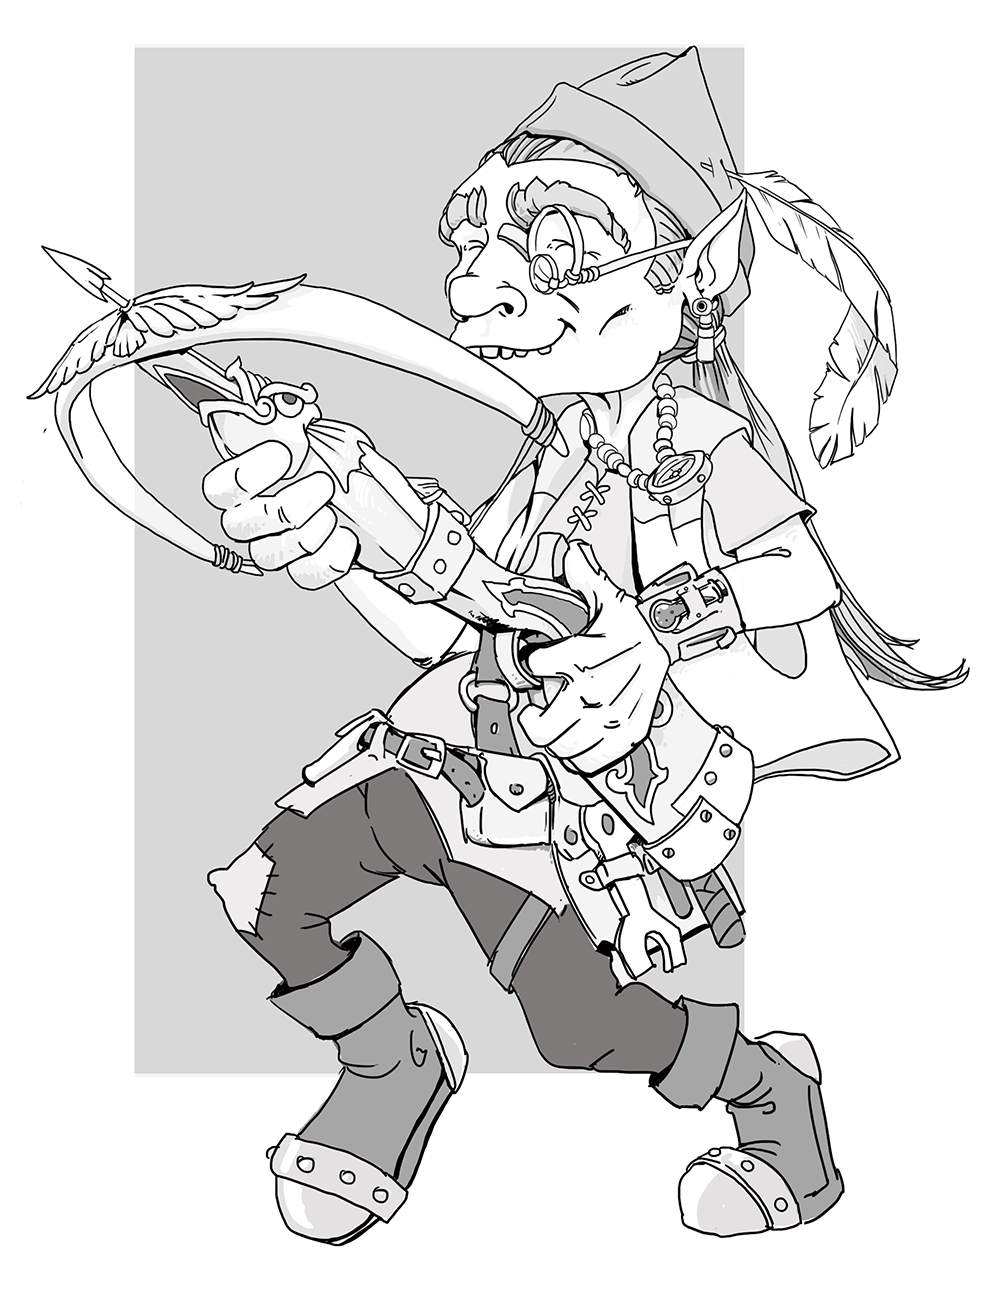 Gnome (Dungeons & Dragons)